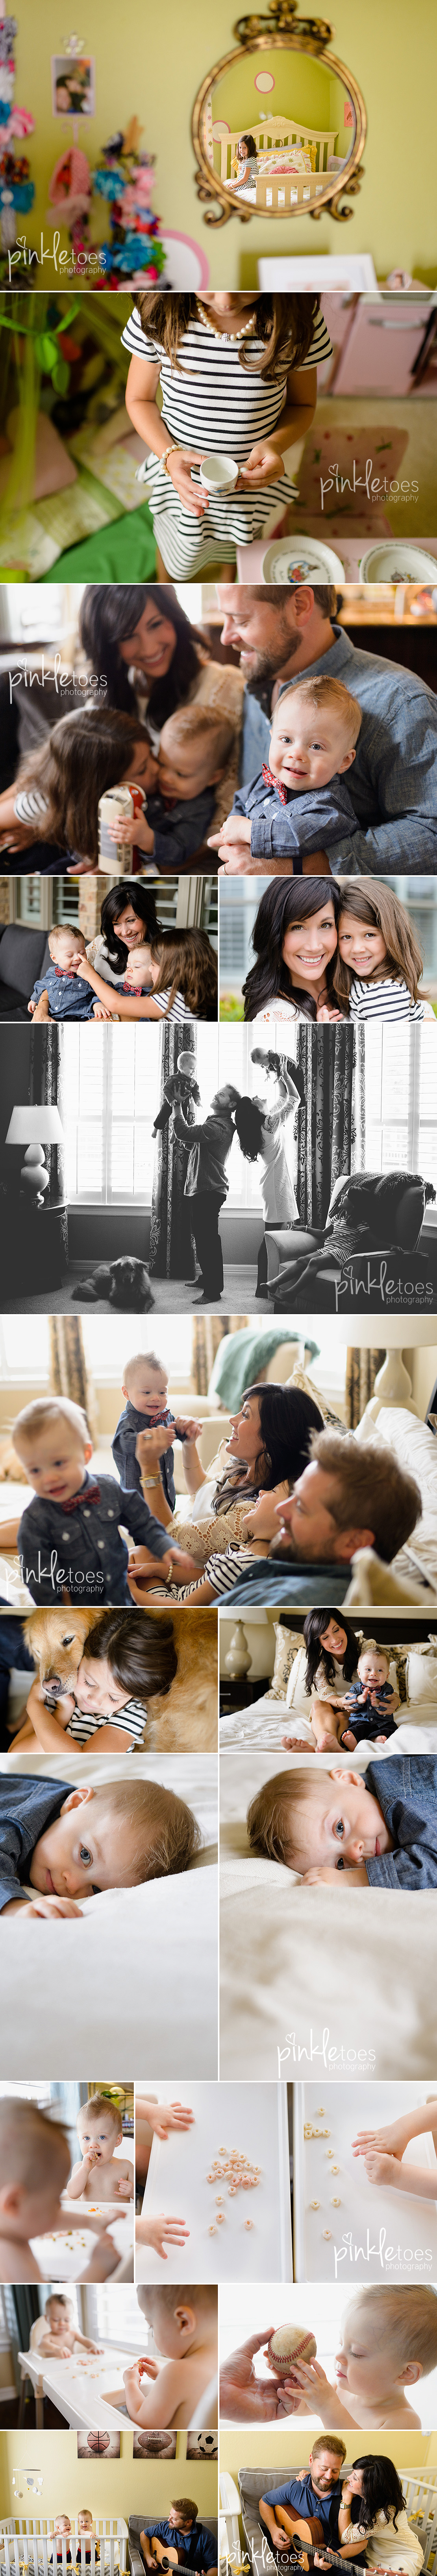 mc-pinkle-toes-photography-austin-family-photos-home-twins-multiples